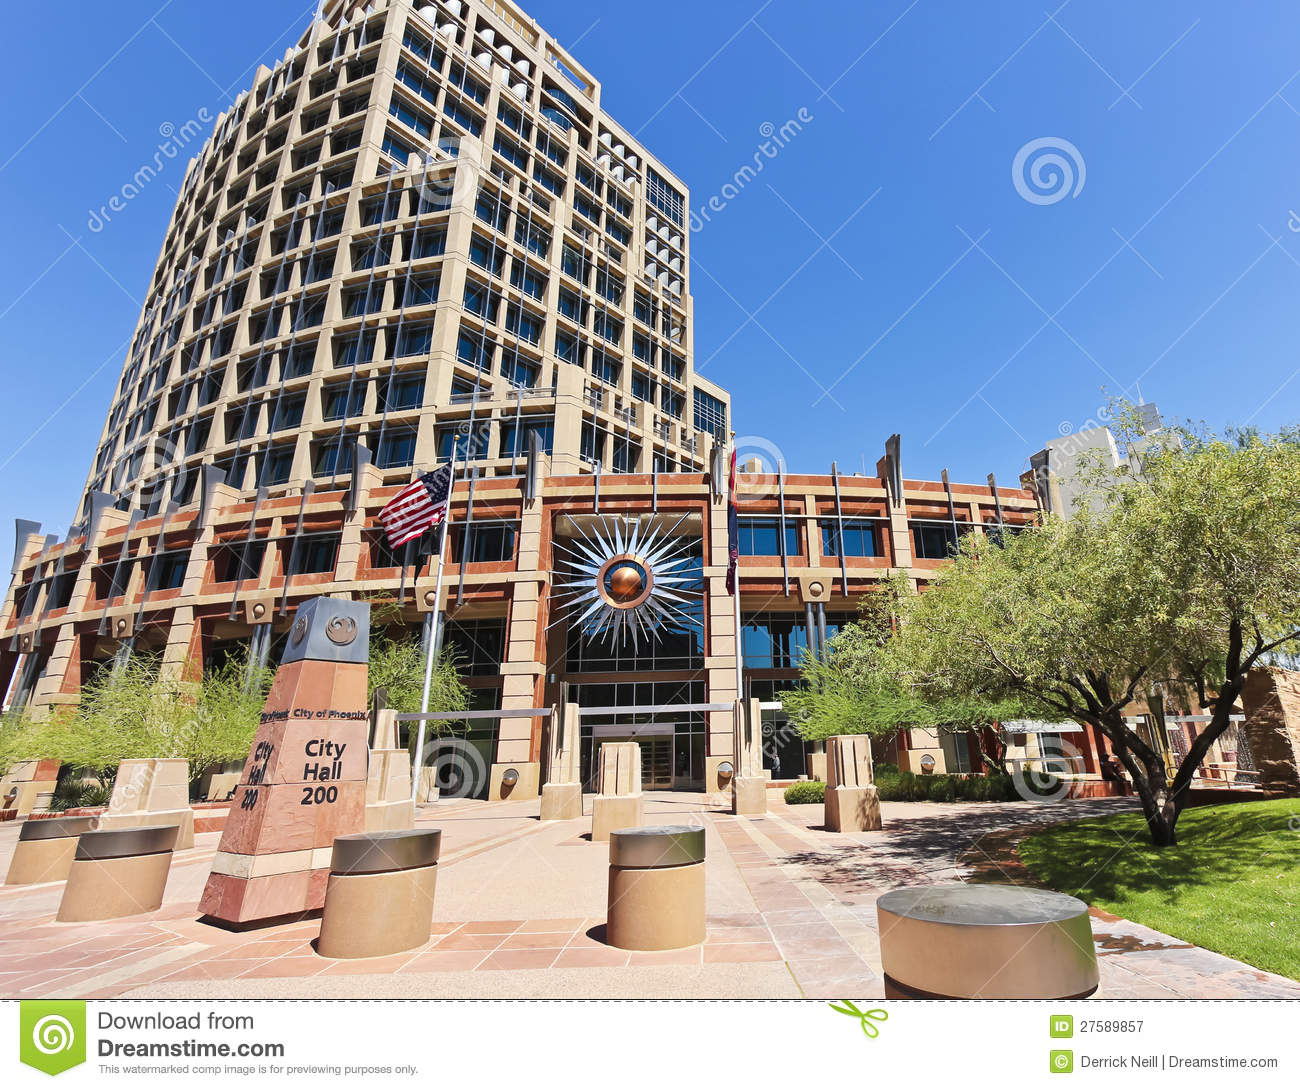 Phenix City (AL) United States  city images : ... phoenix city hall on june 13 2012 in phoenix arizona phoenix city hall